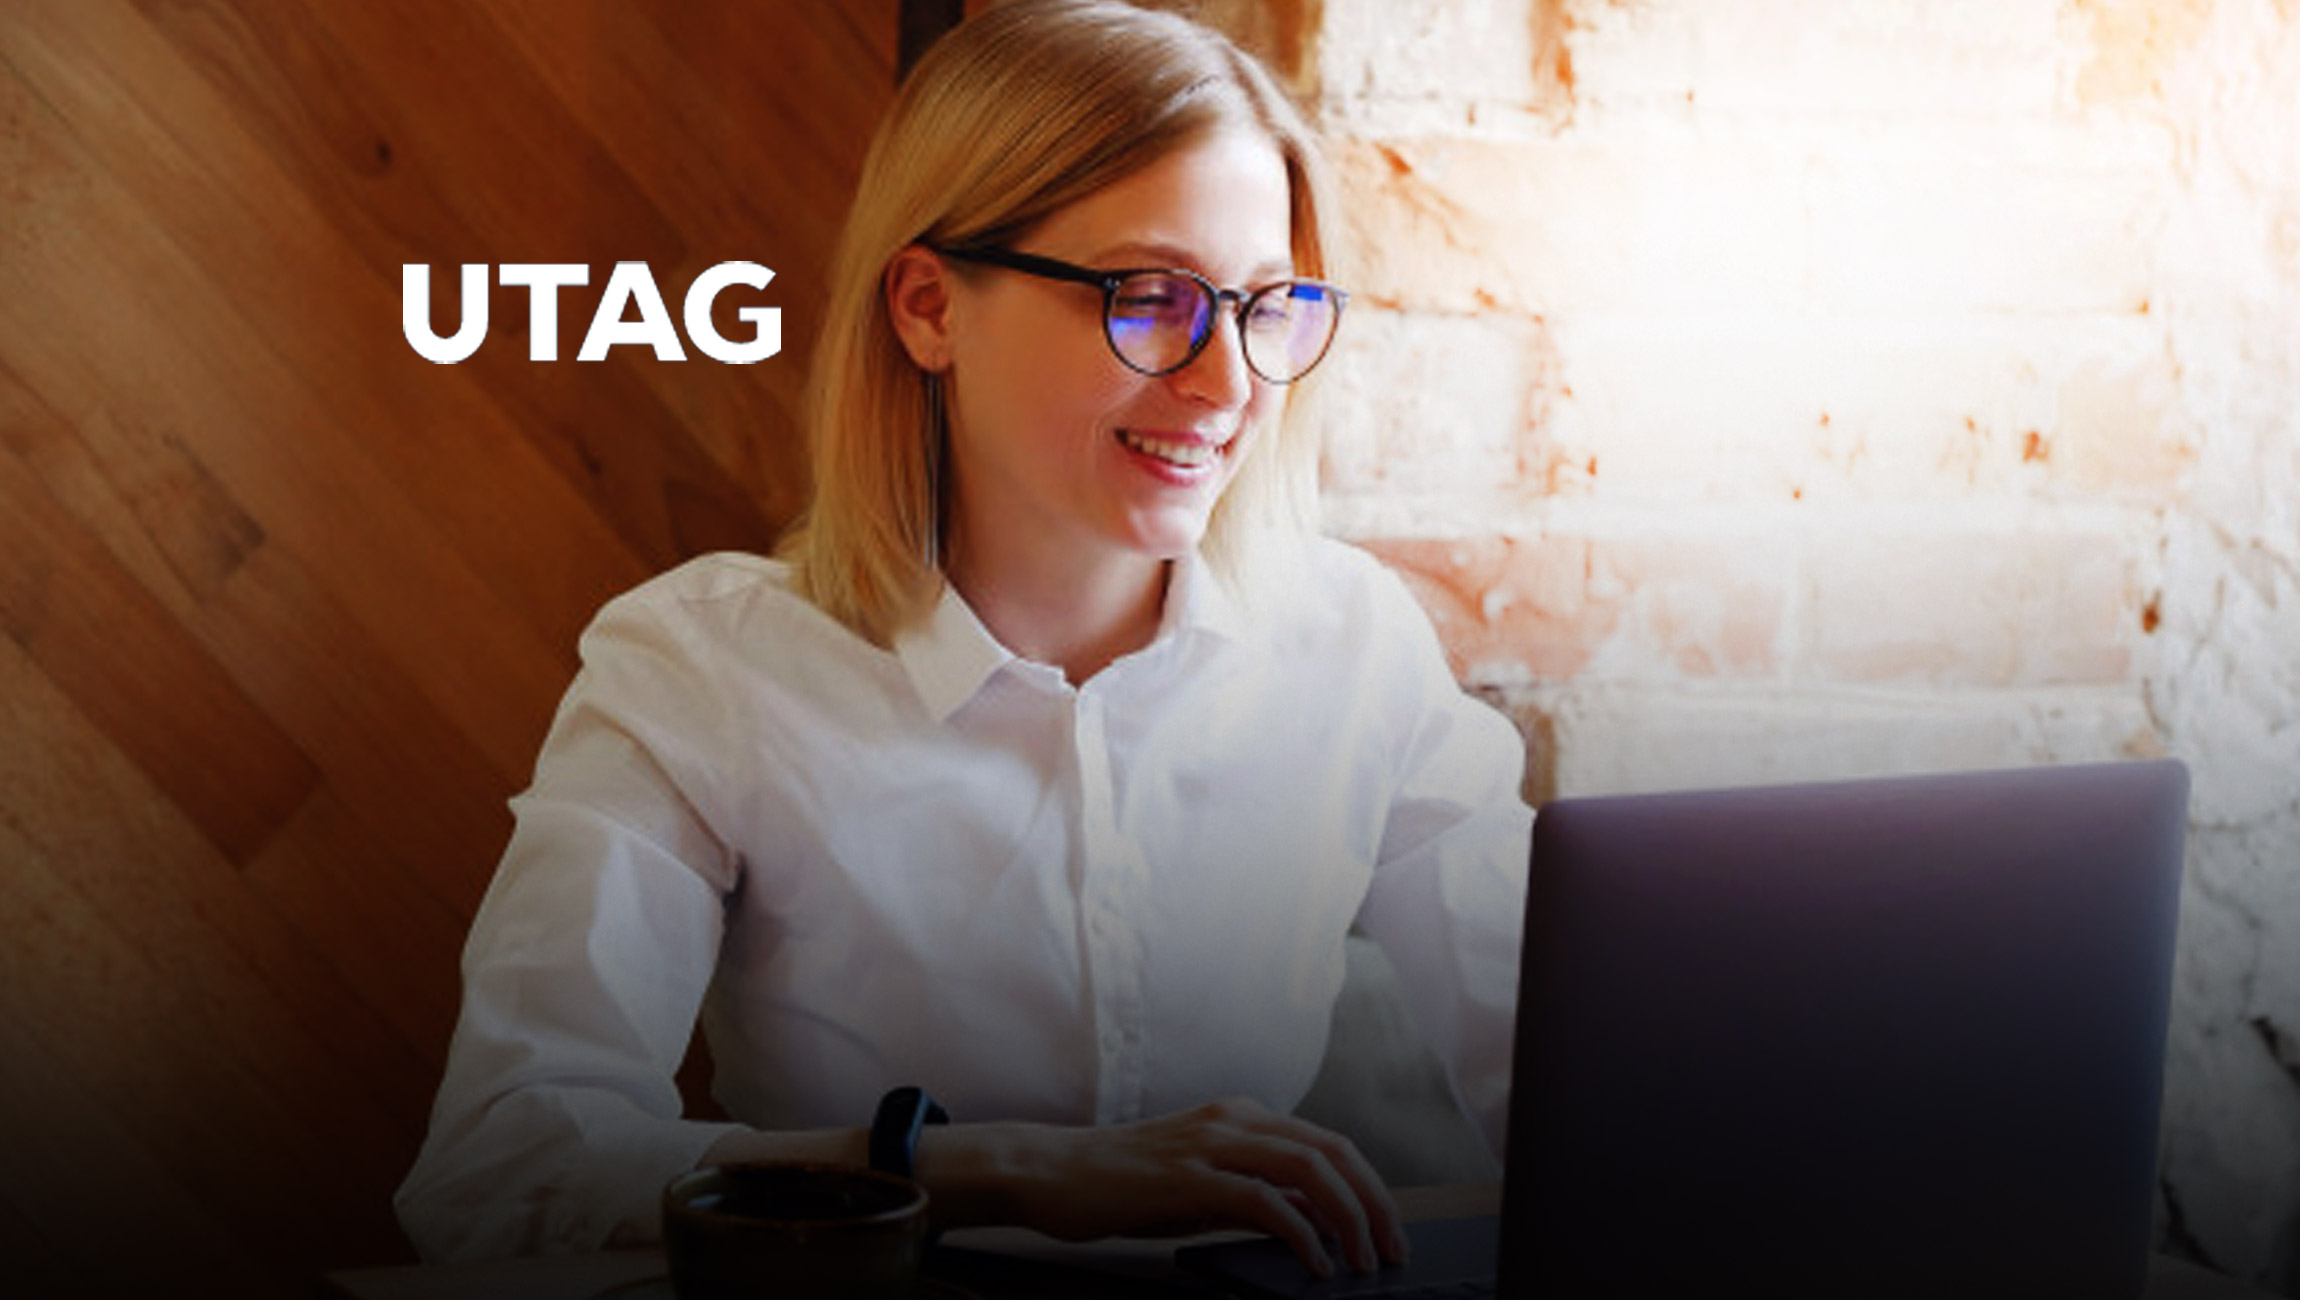 Super-digitalization: UTAG and OCP TECH join forces to maximize their services in the technology and digital communication markets